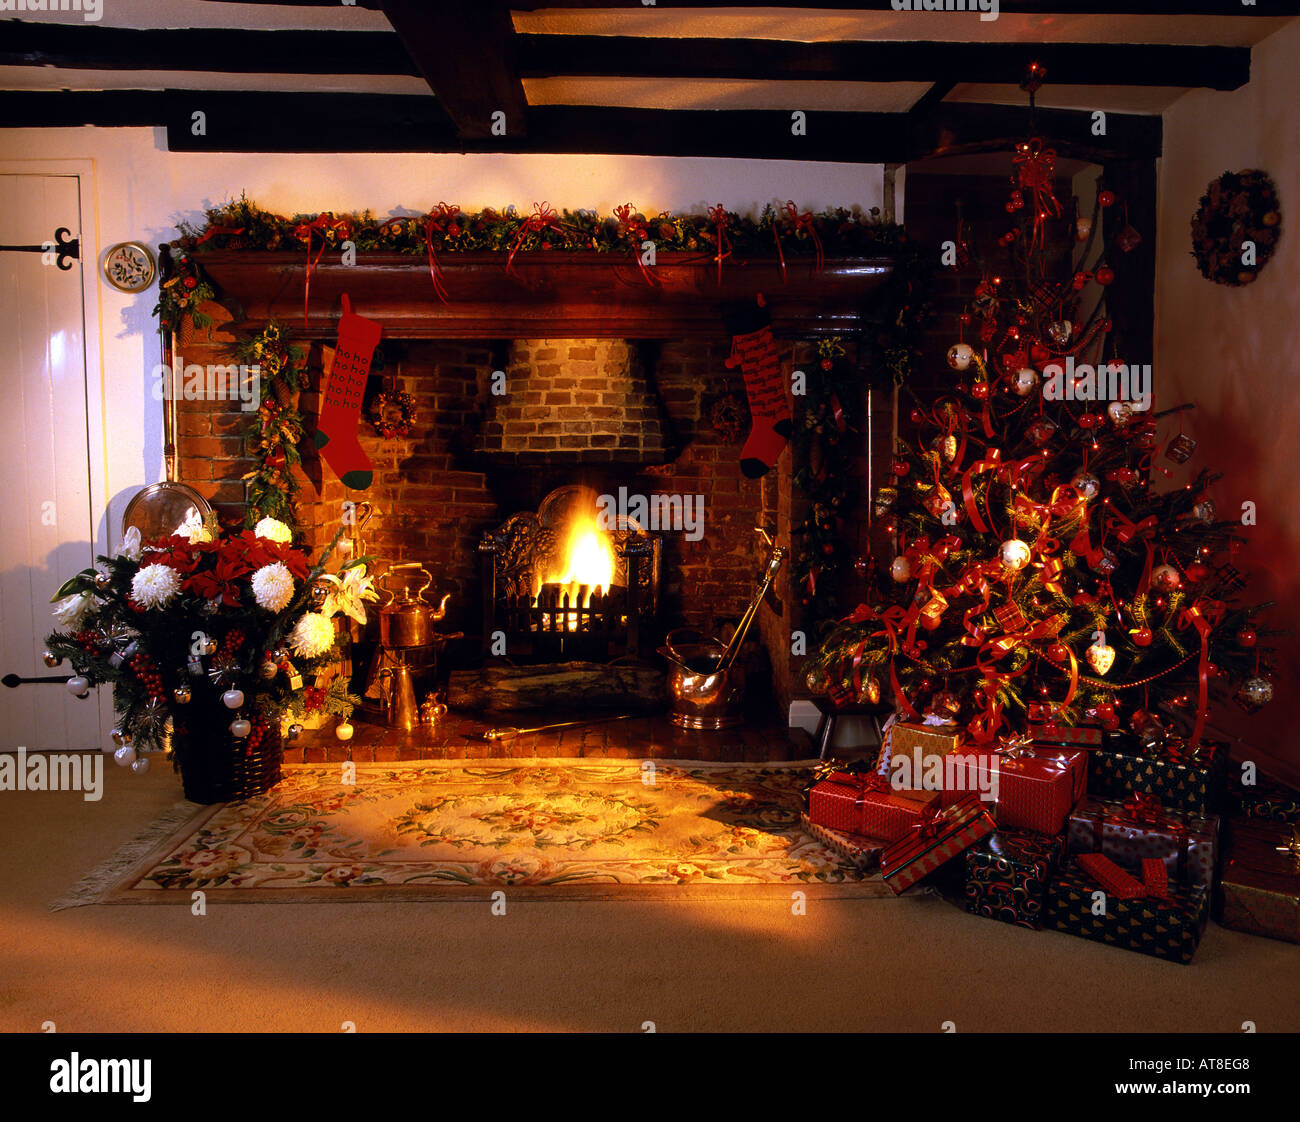 traditionelle englische country cottage inglenook kamin dekoriert f r weihnachten stockfoto. Black Bedroom Furniture Sets. Home Design Ideas